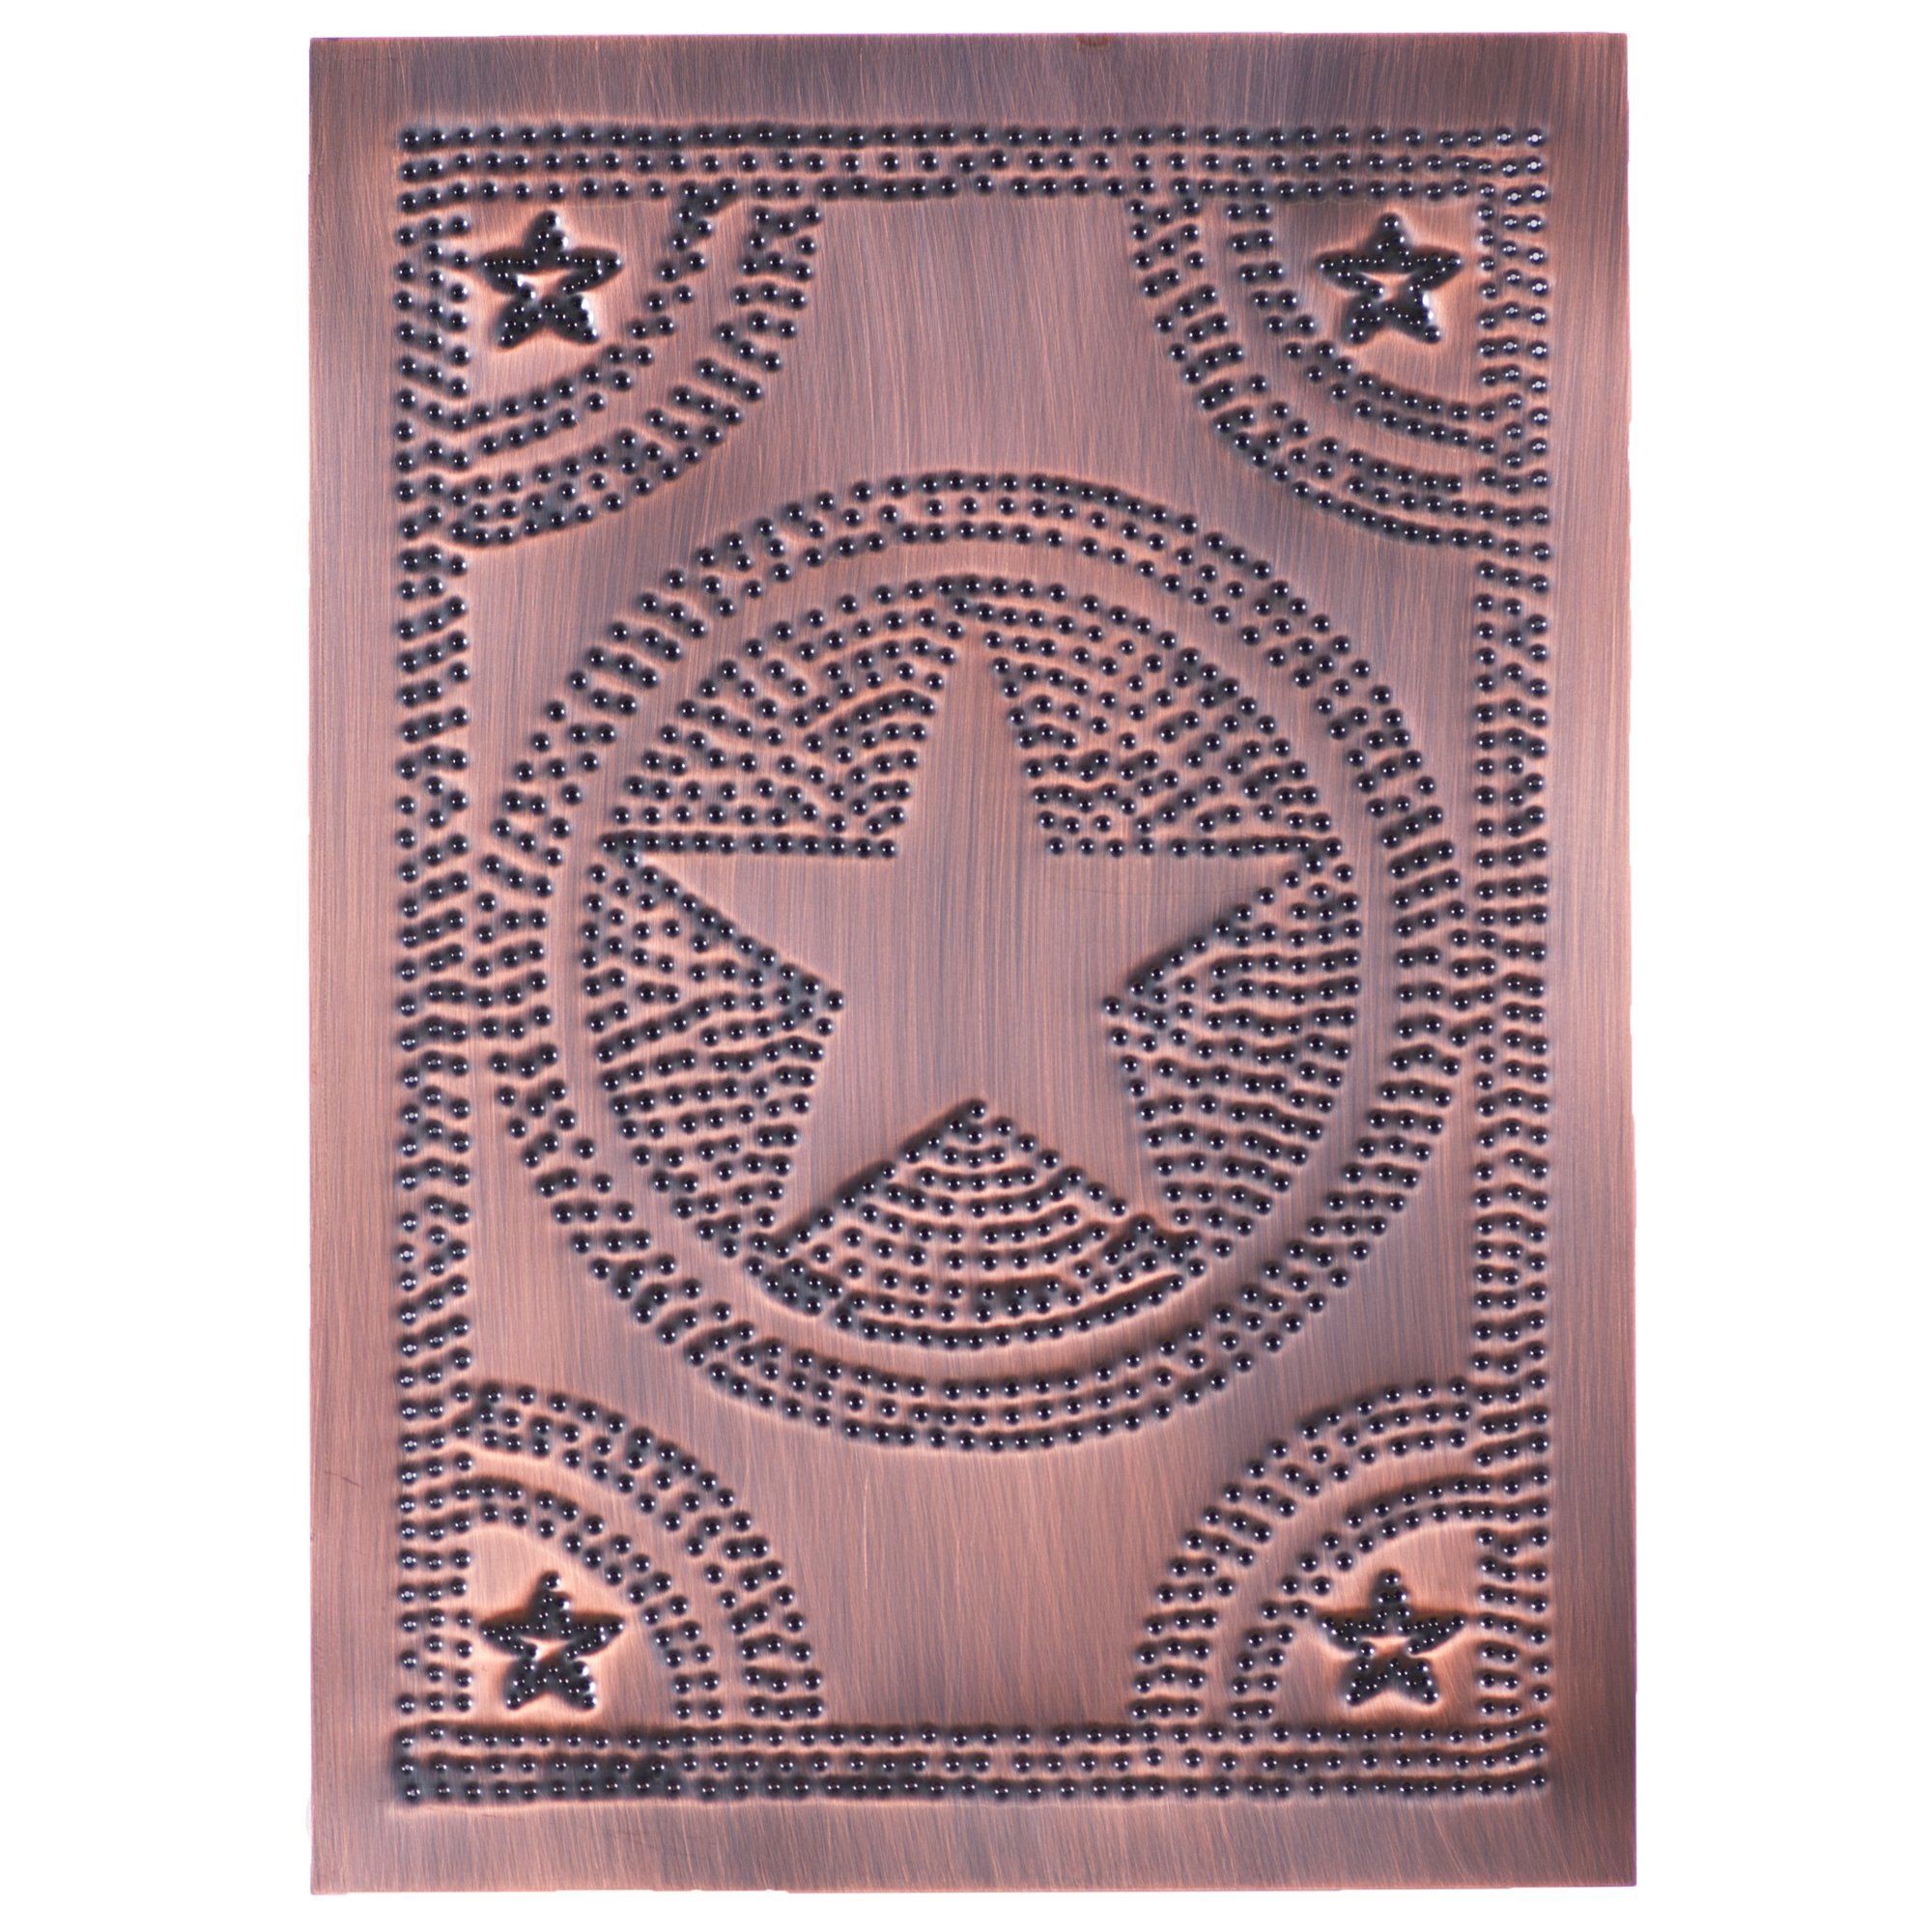 Irvin's Country Tinware Regular Star in Solid Copper